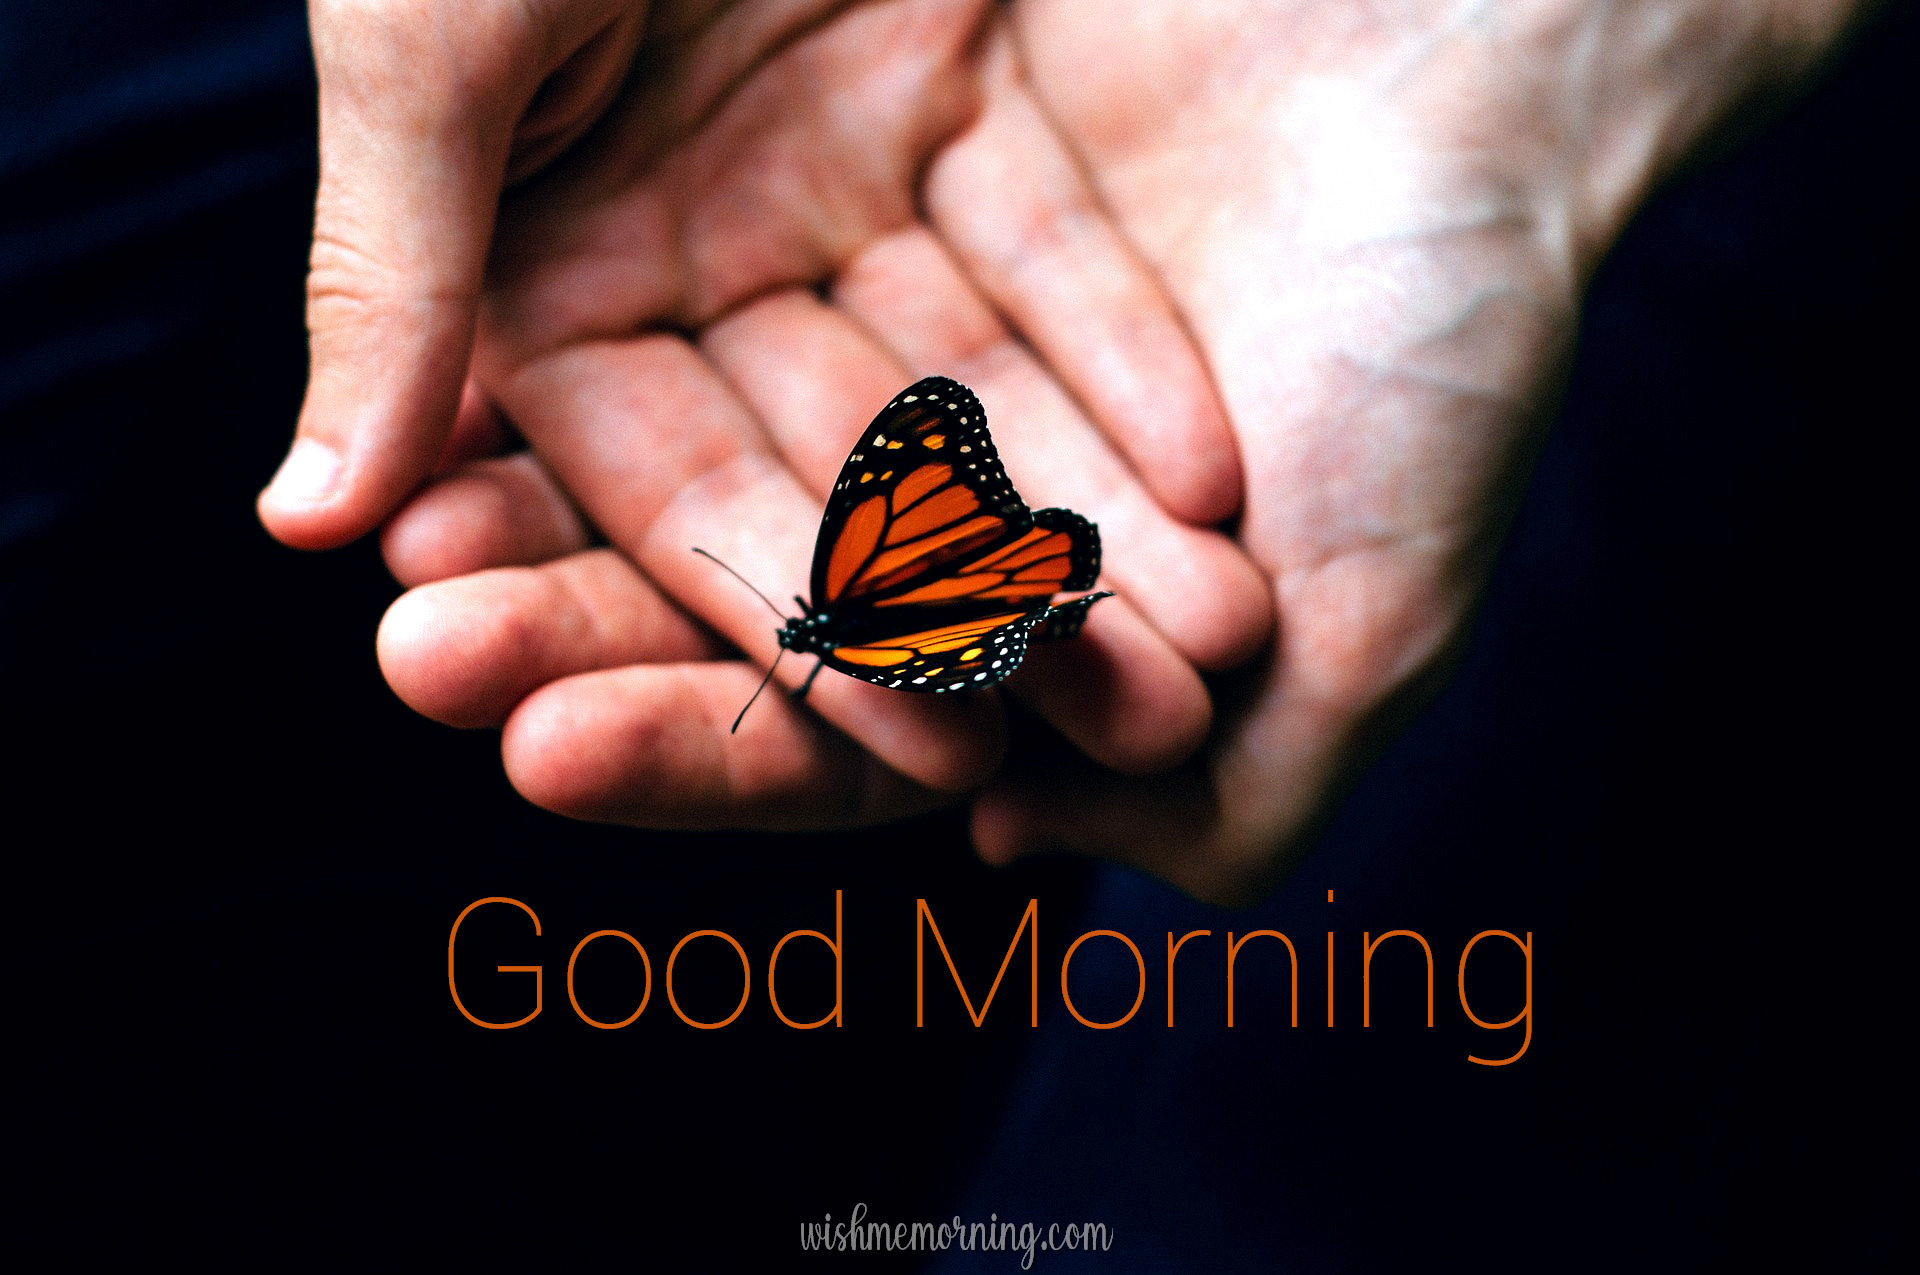 Beautiful Butterfly Good Morning Images wishmemorning.com 24